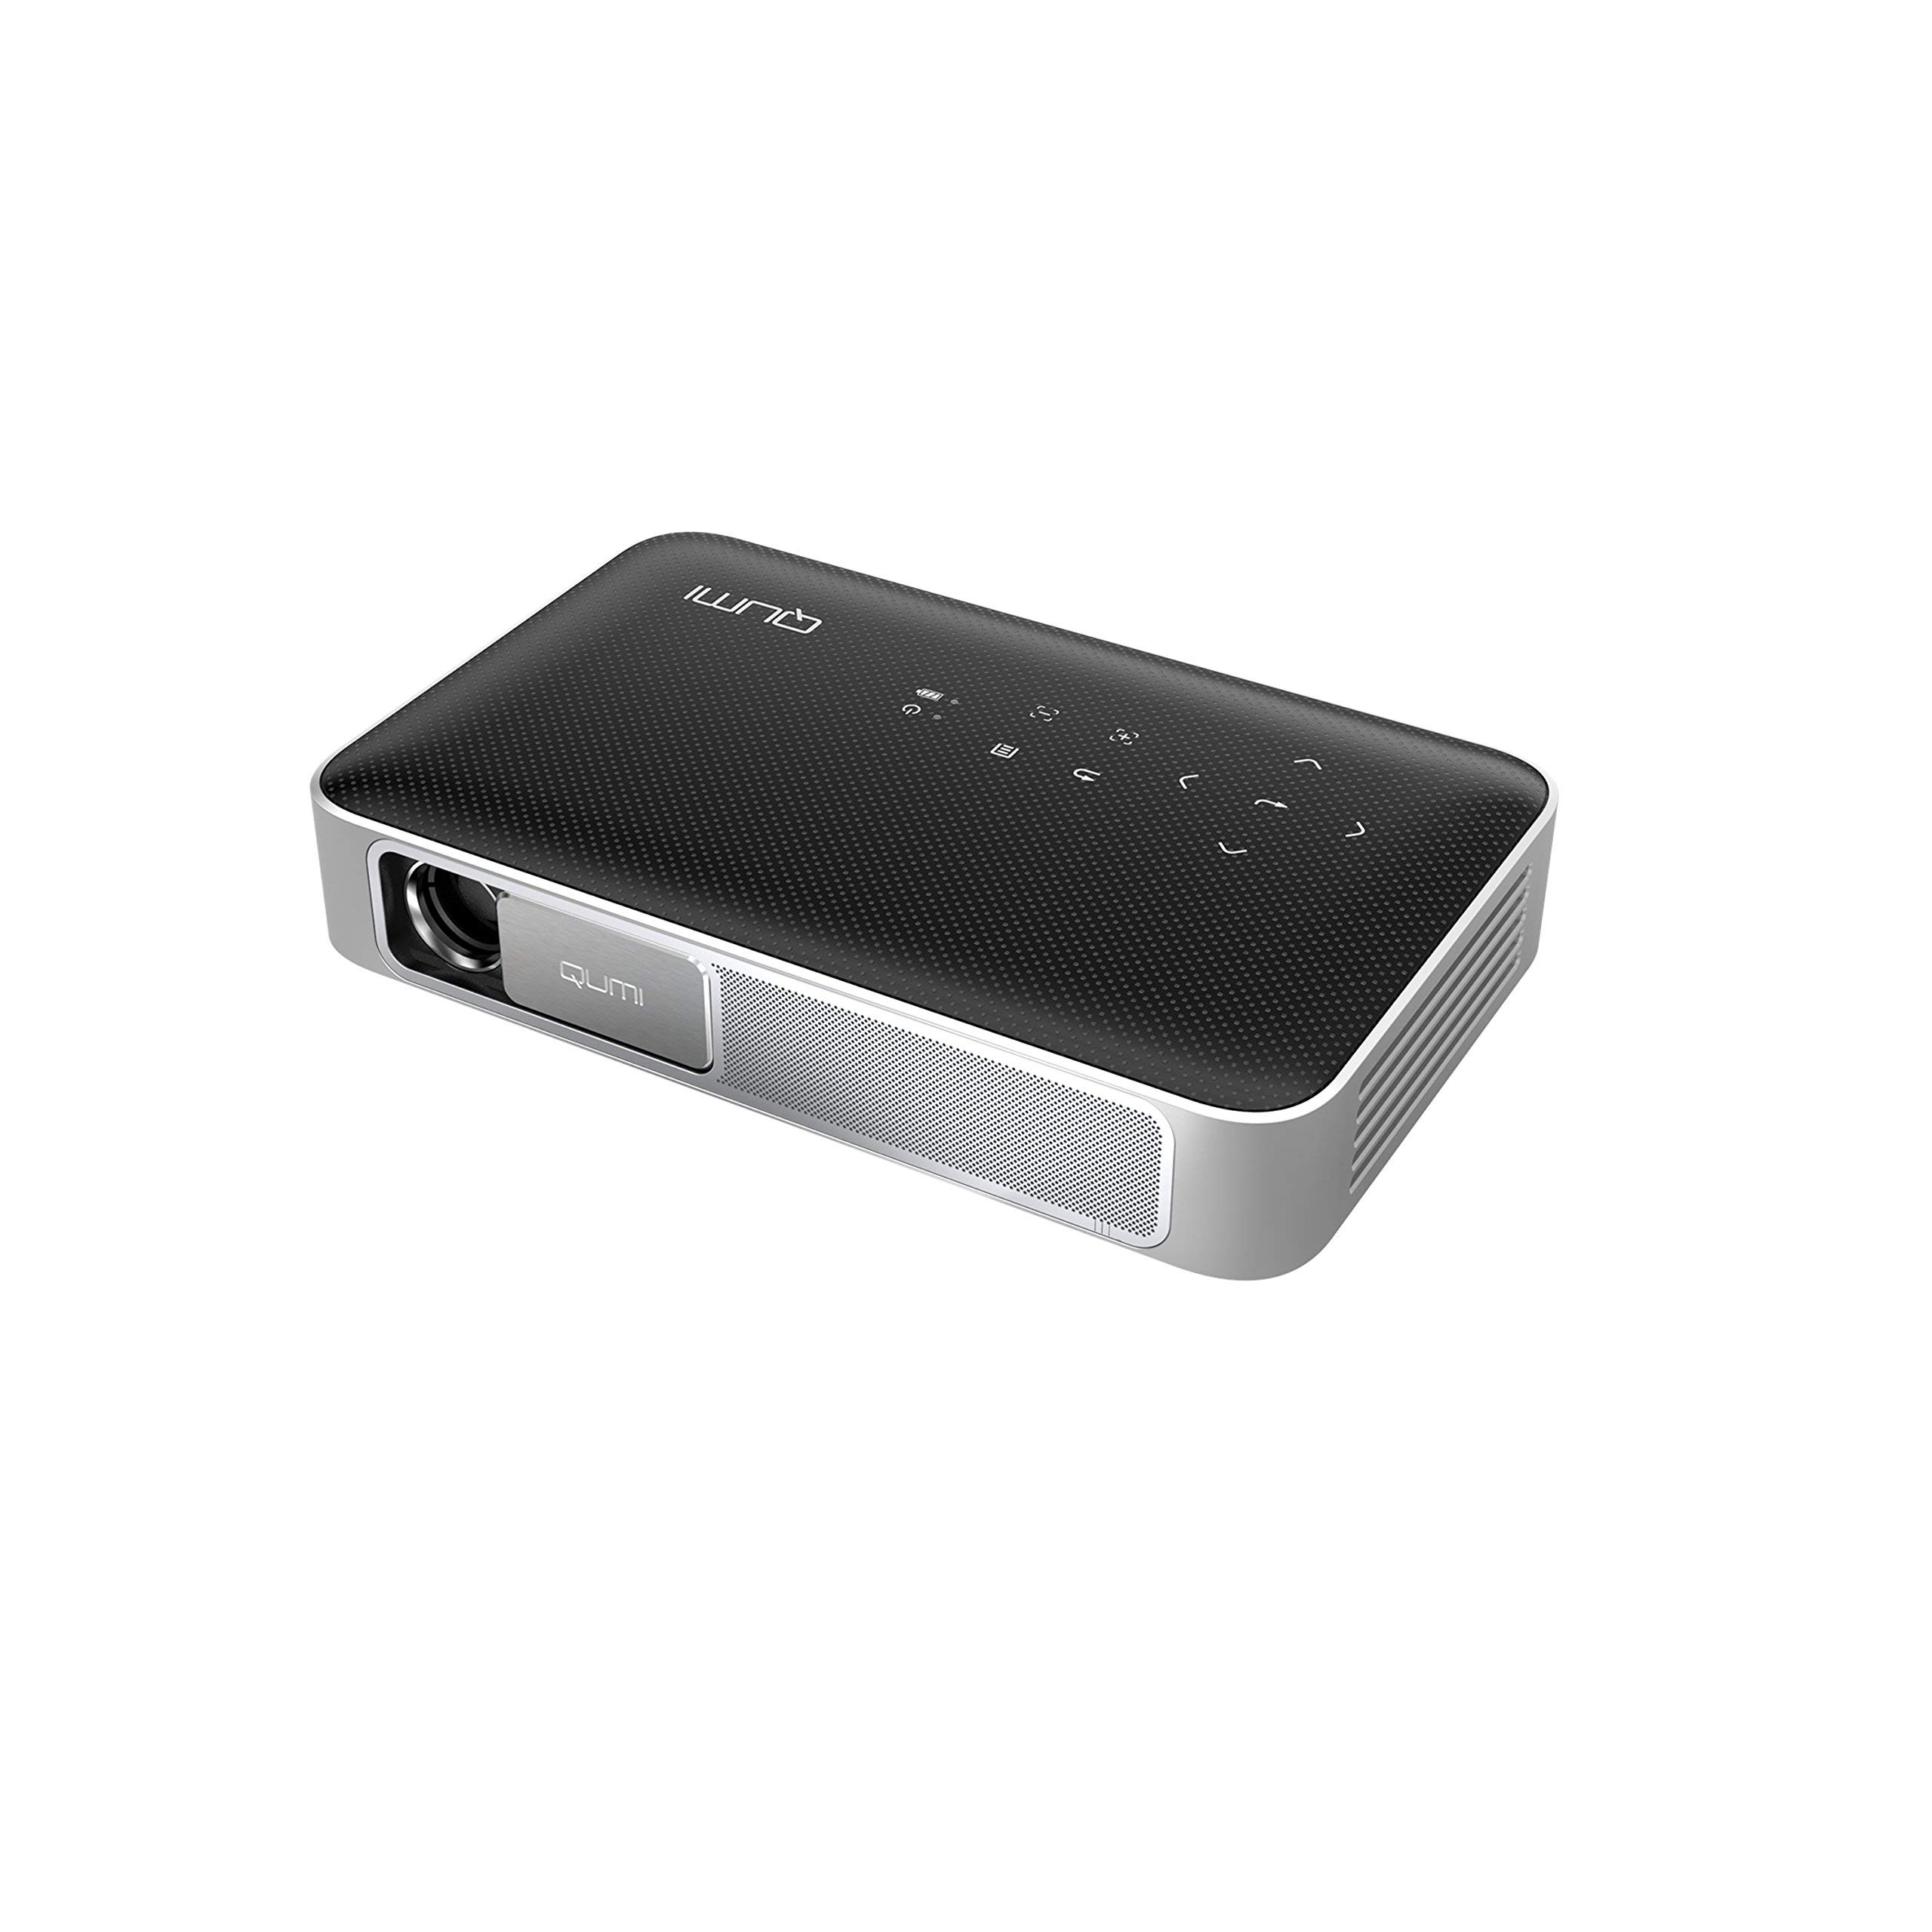 Vivitek Q38-BK Ultra-Portable Full HD Smart Projector Black (Renewed)